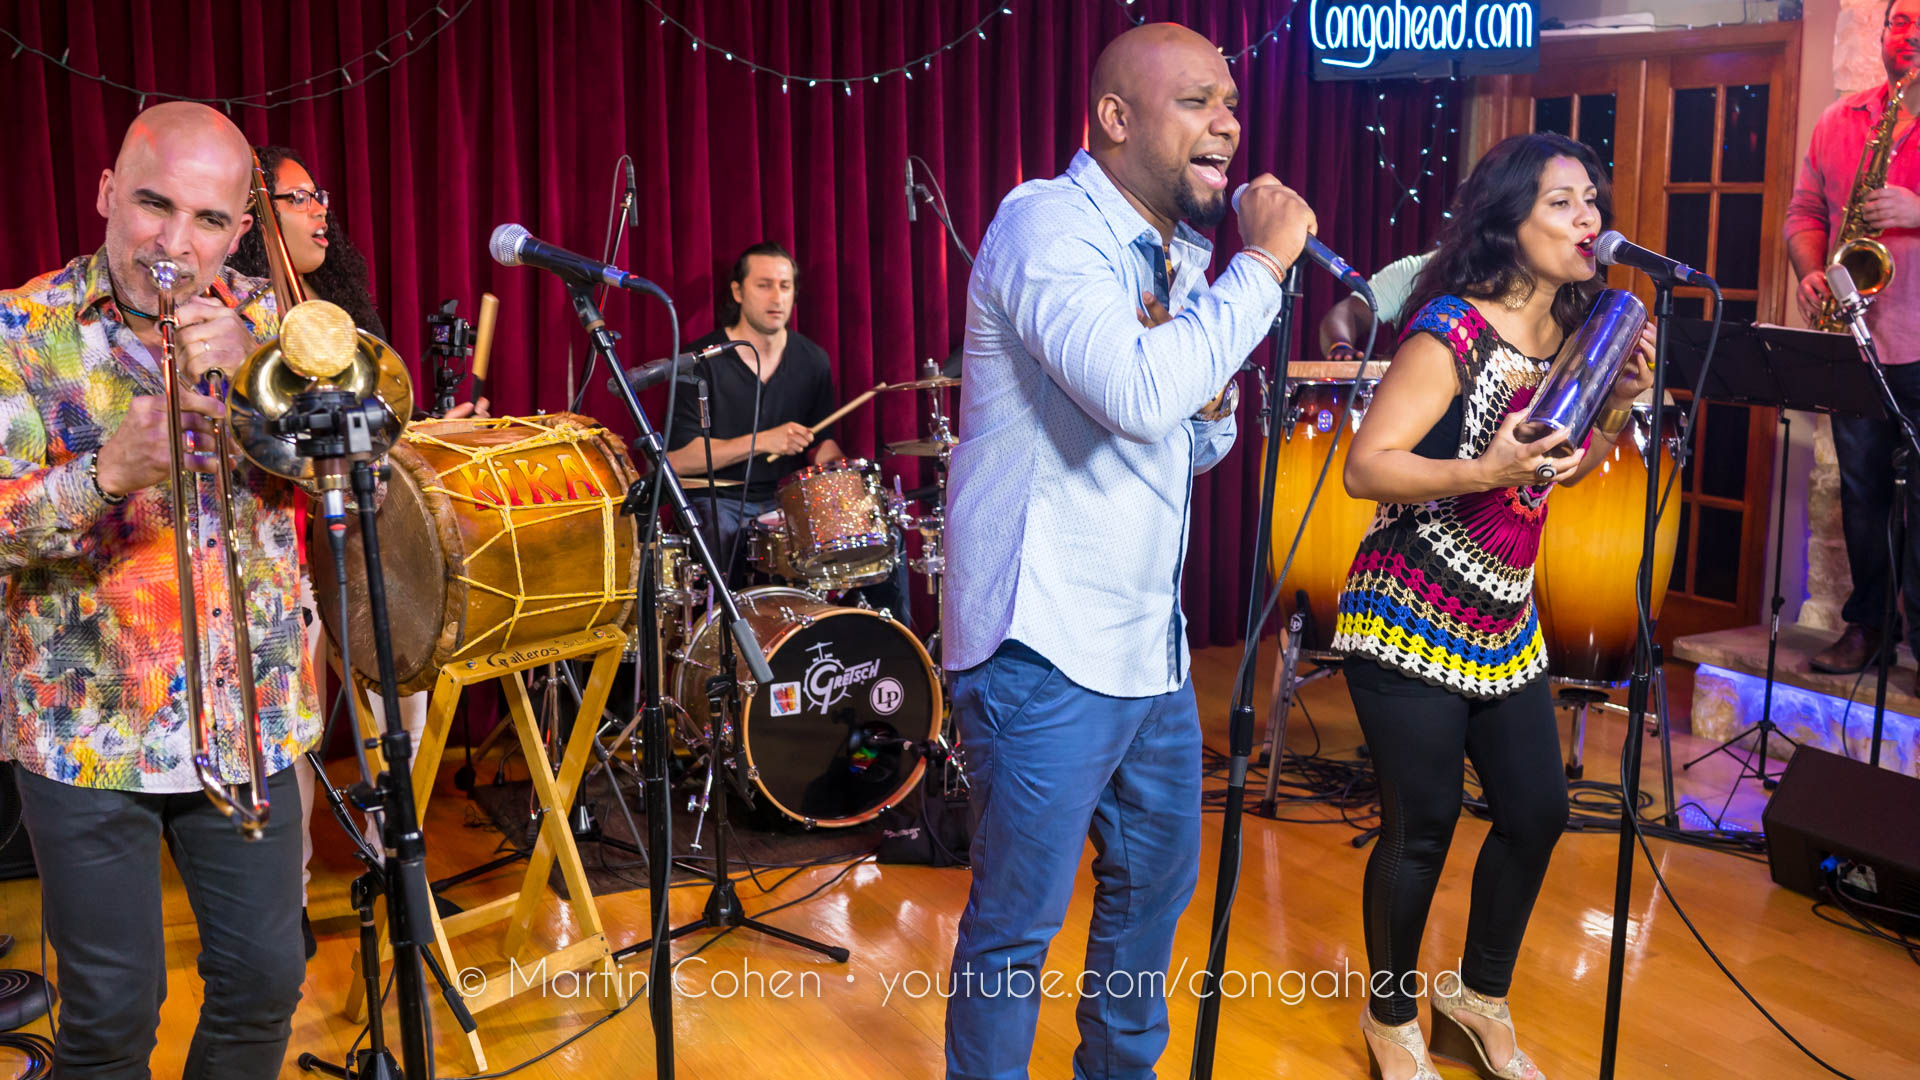 Grupo Rebolu Ft. Jimmy Bosch & Edmar Castaneda perform at Congahead Studios